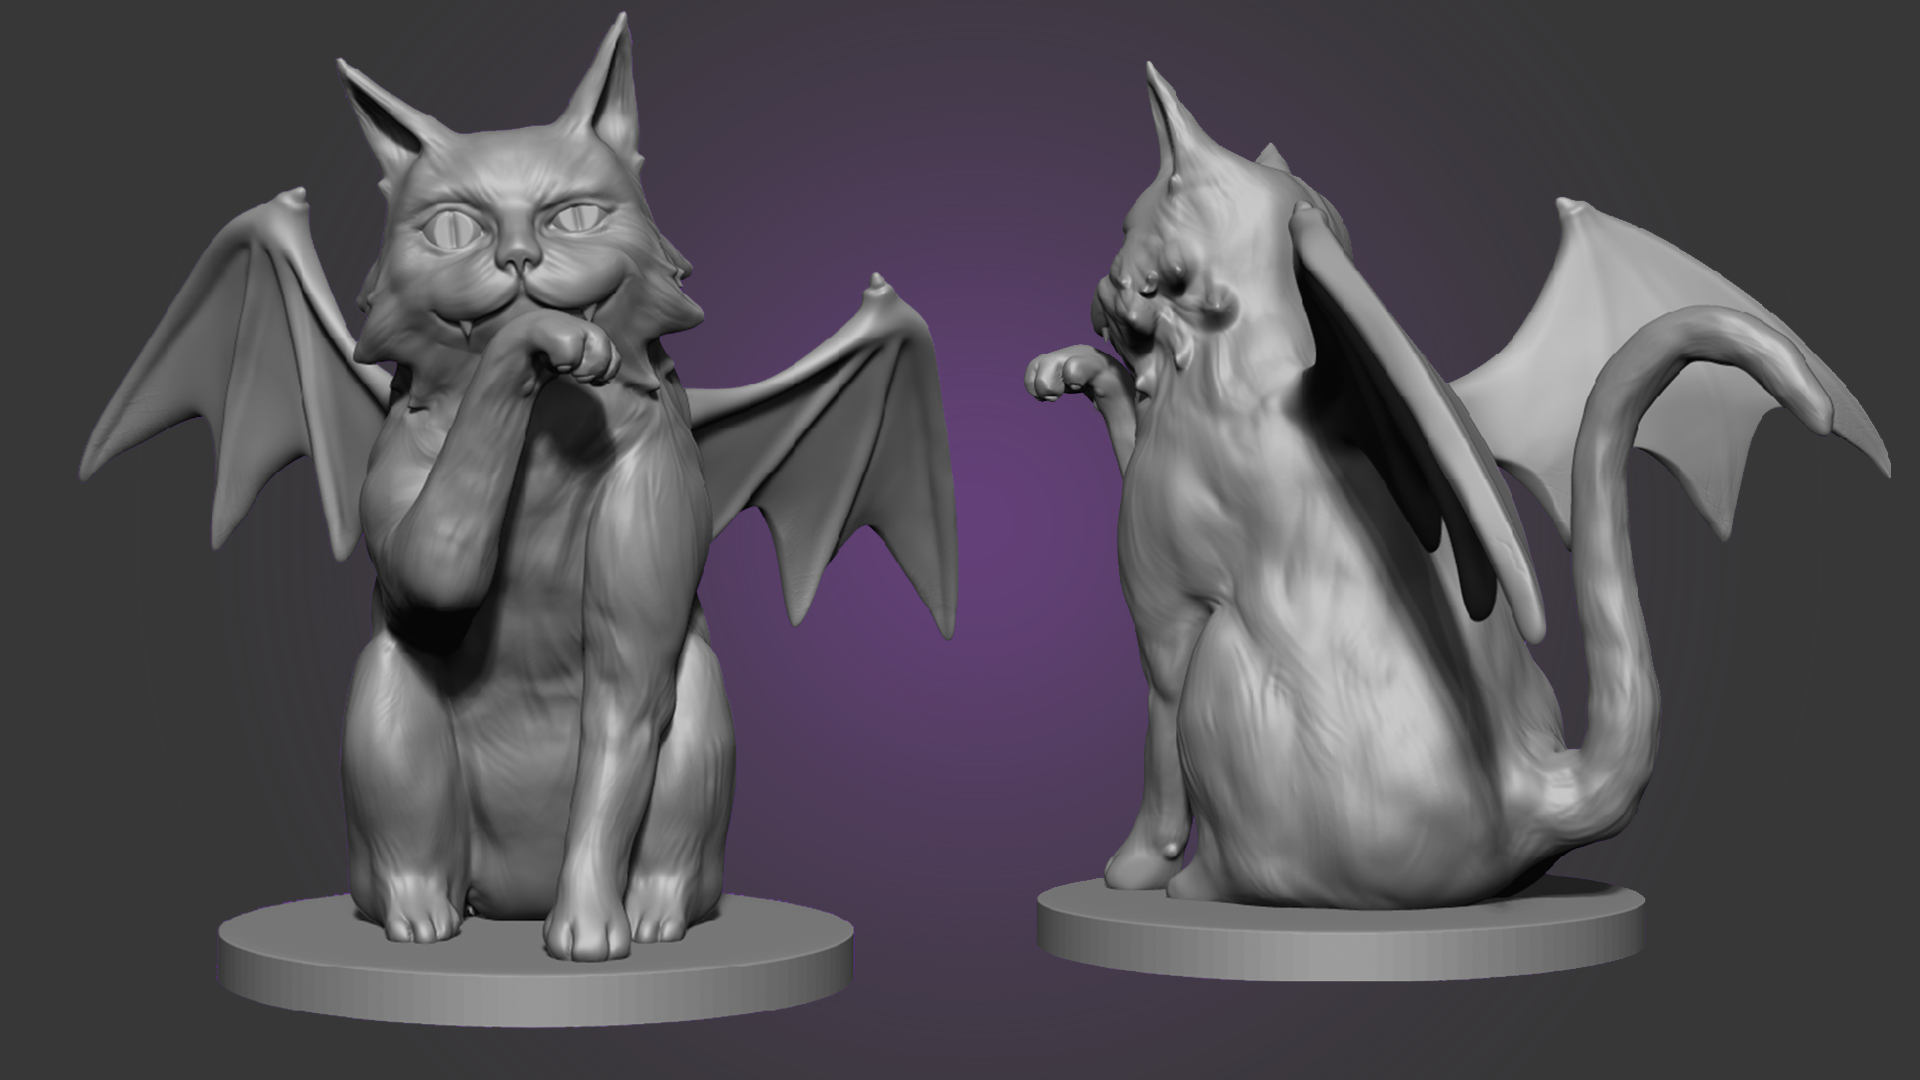 High-res sculpting (front & back 3/4 views)